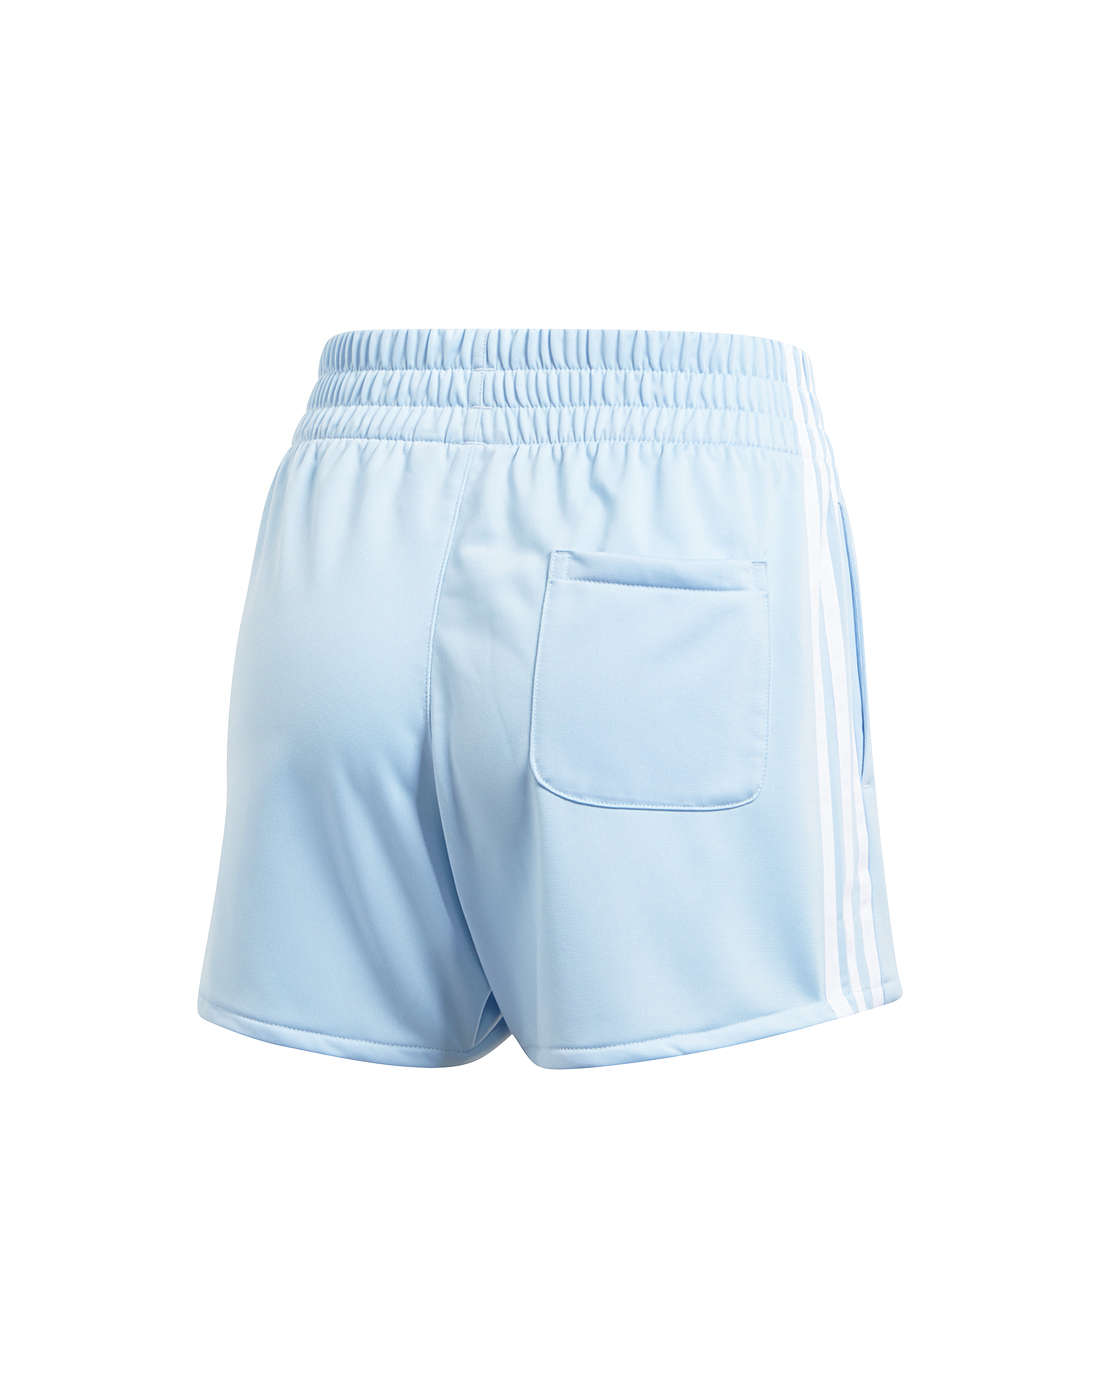 Adidas Originals Womens 3 Stripes Shorts Blue Life Style Sports Ie